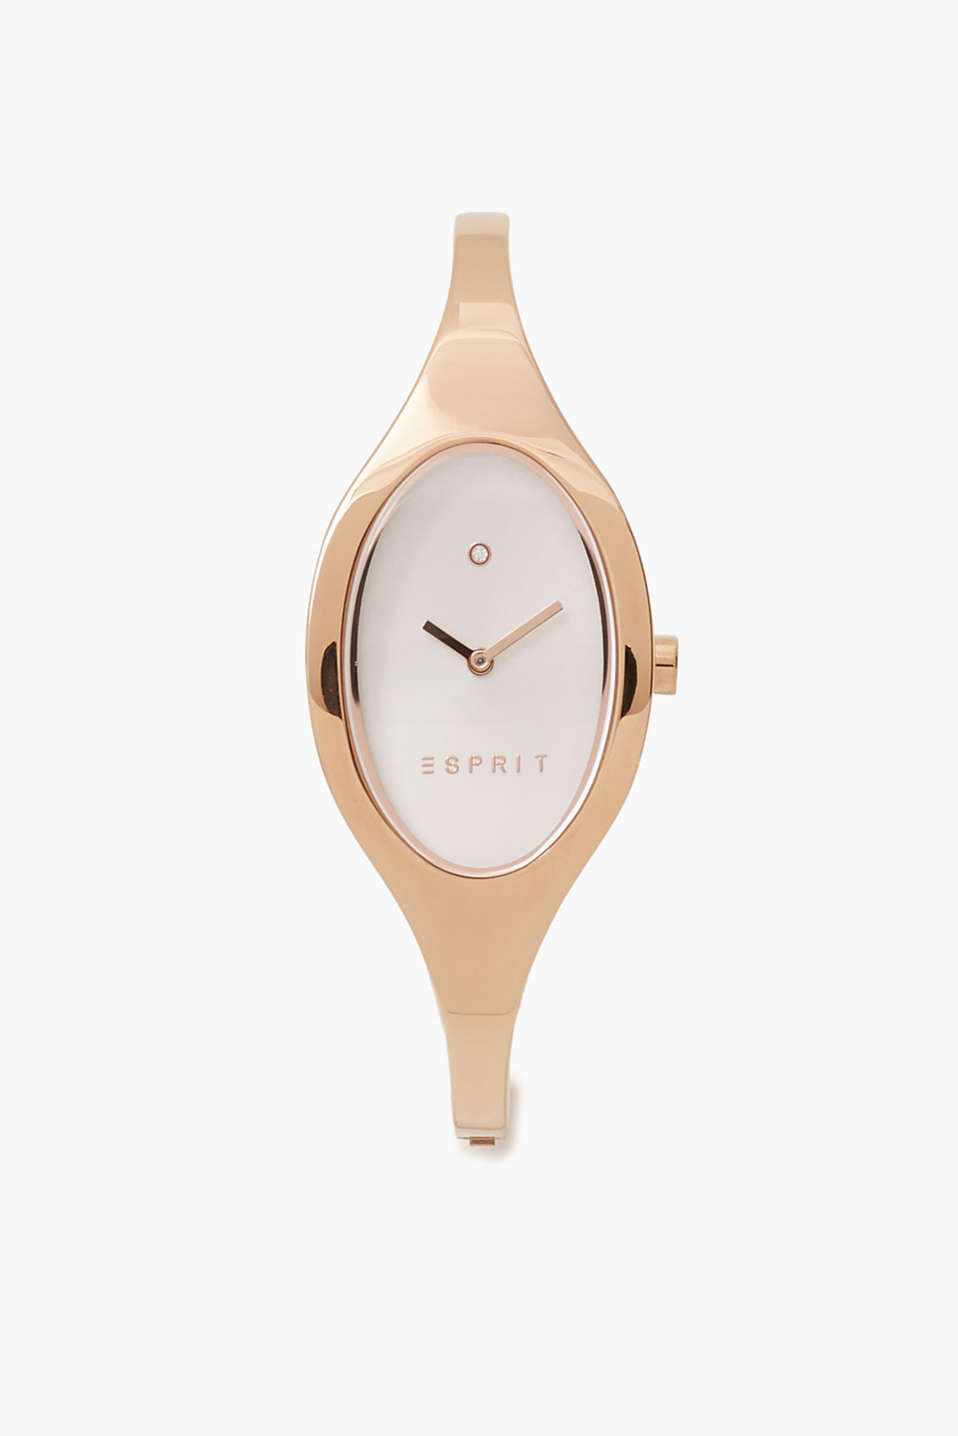 Esprit - Pink gold bracelet watch